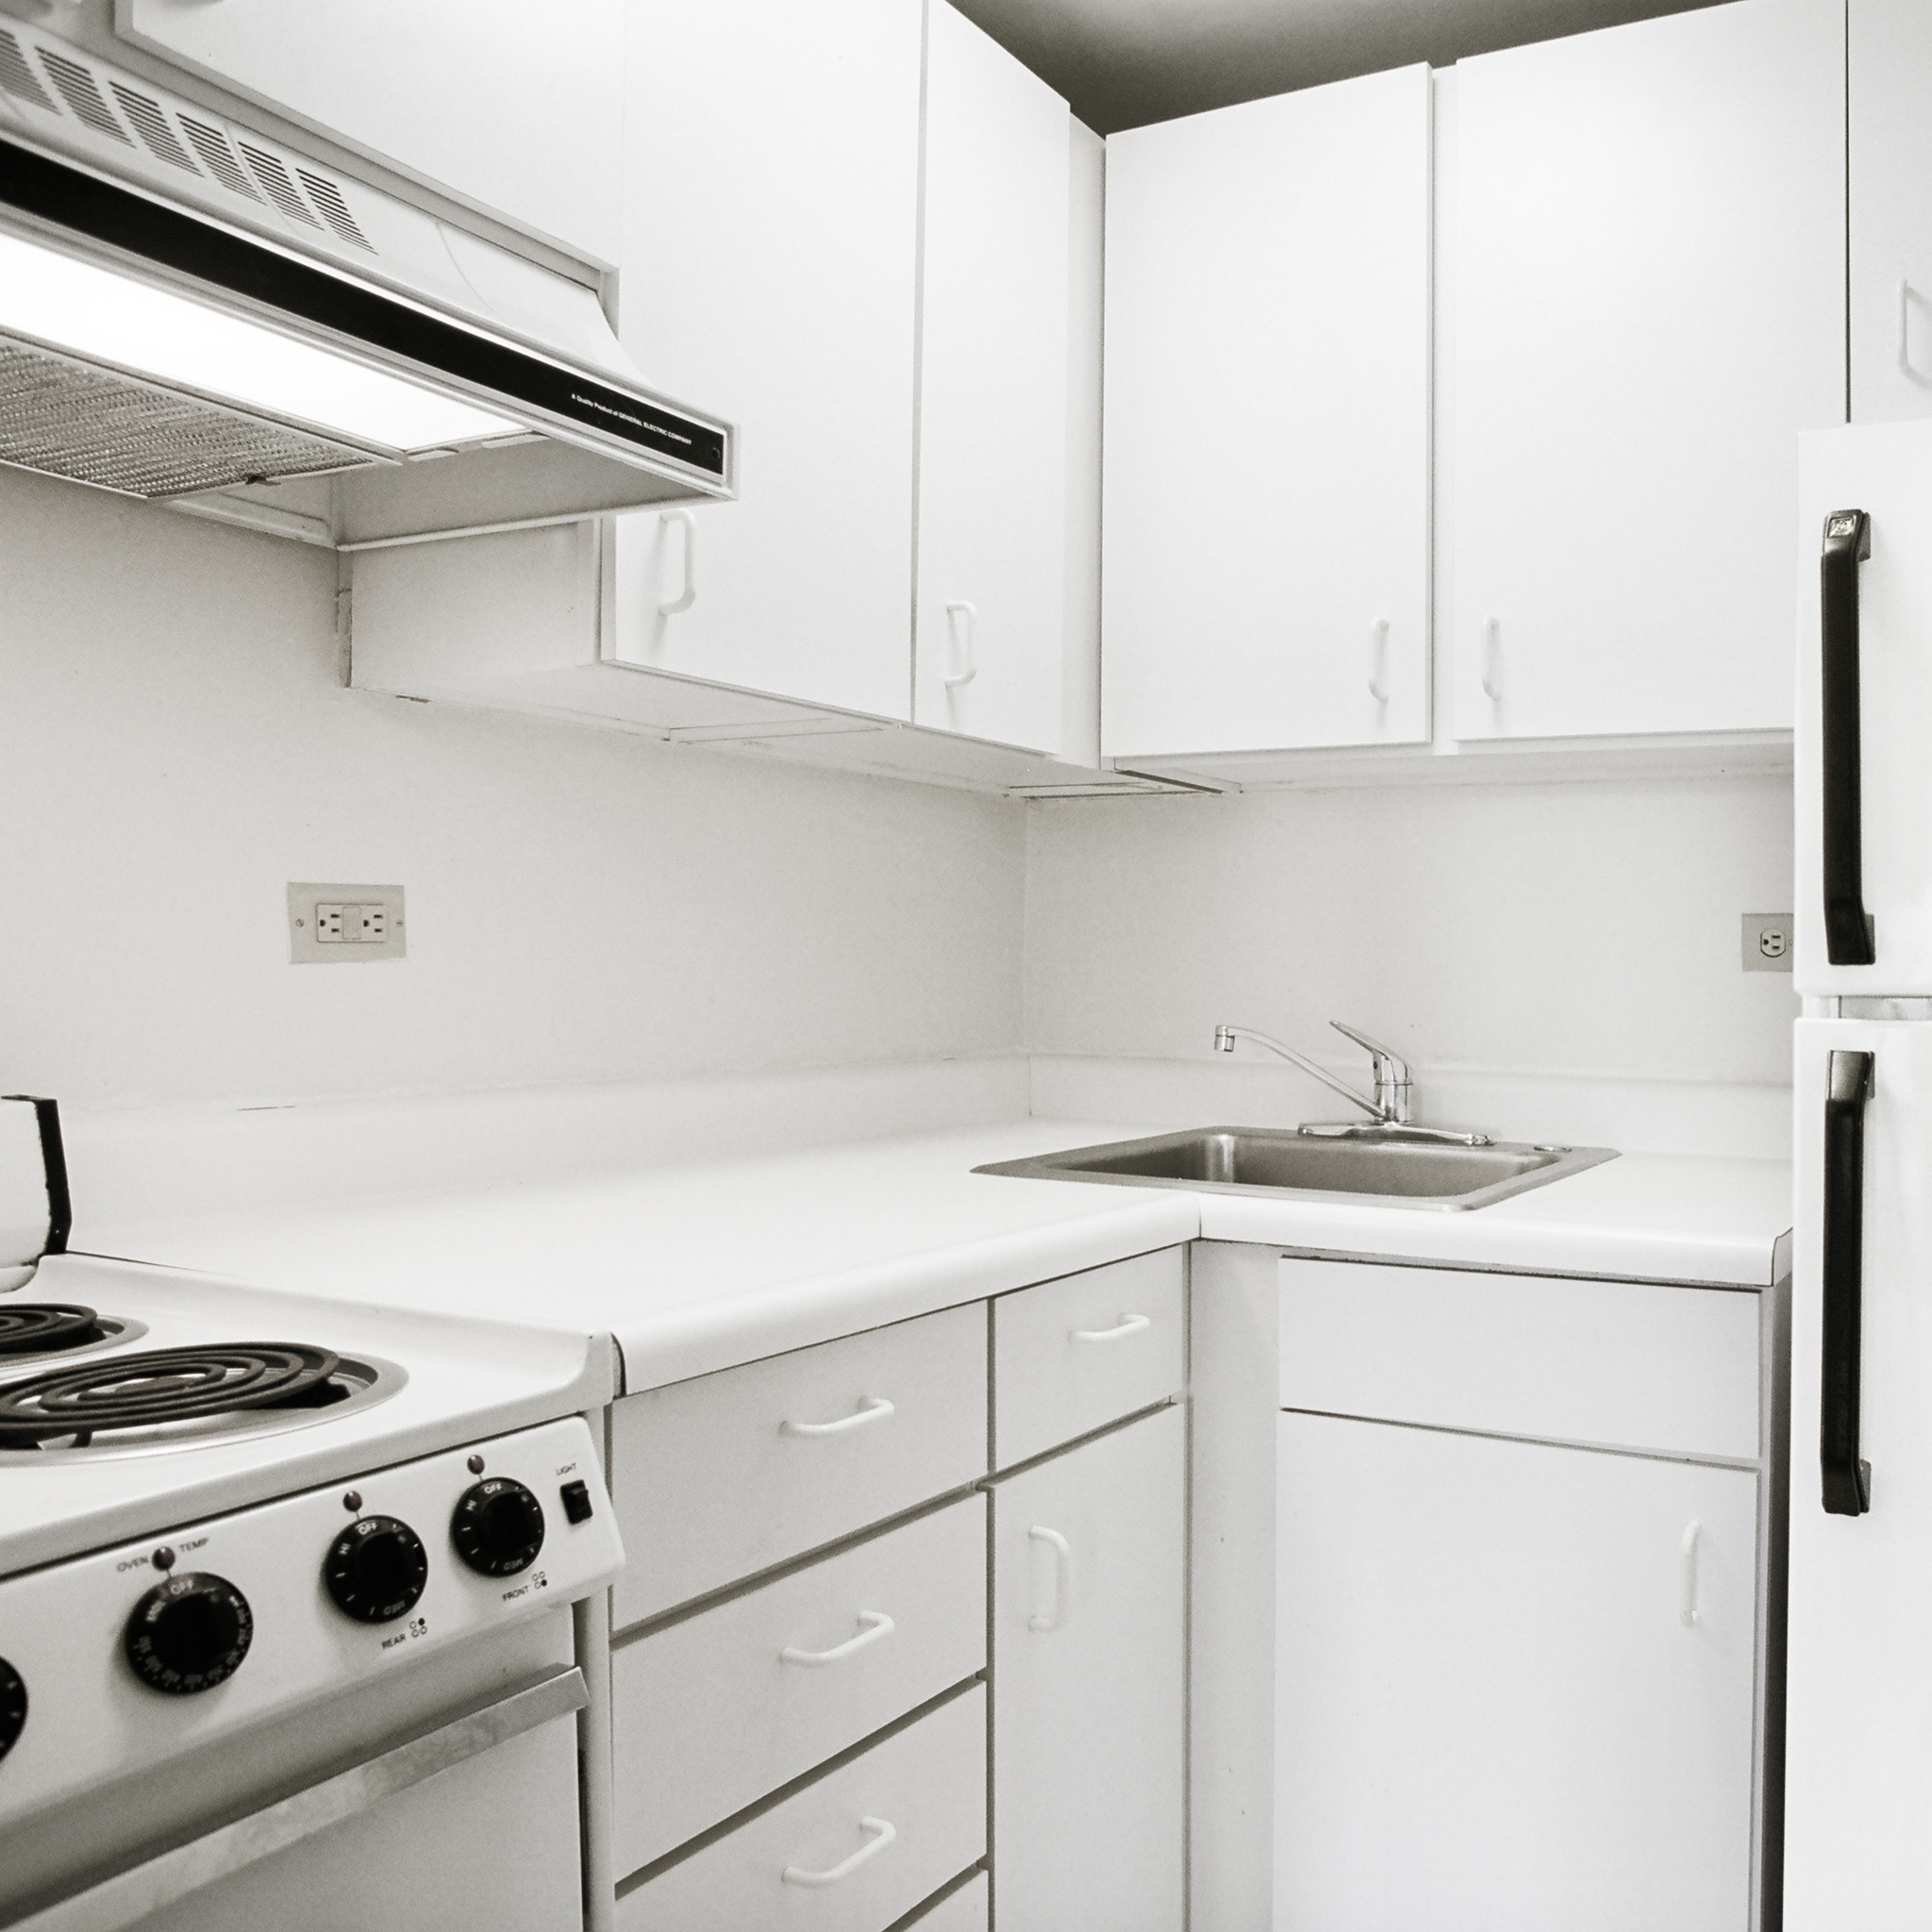 interior of 342 S. Highland Ave, Apt. 16A 5